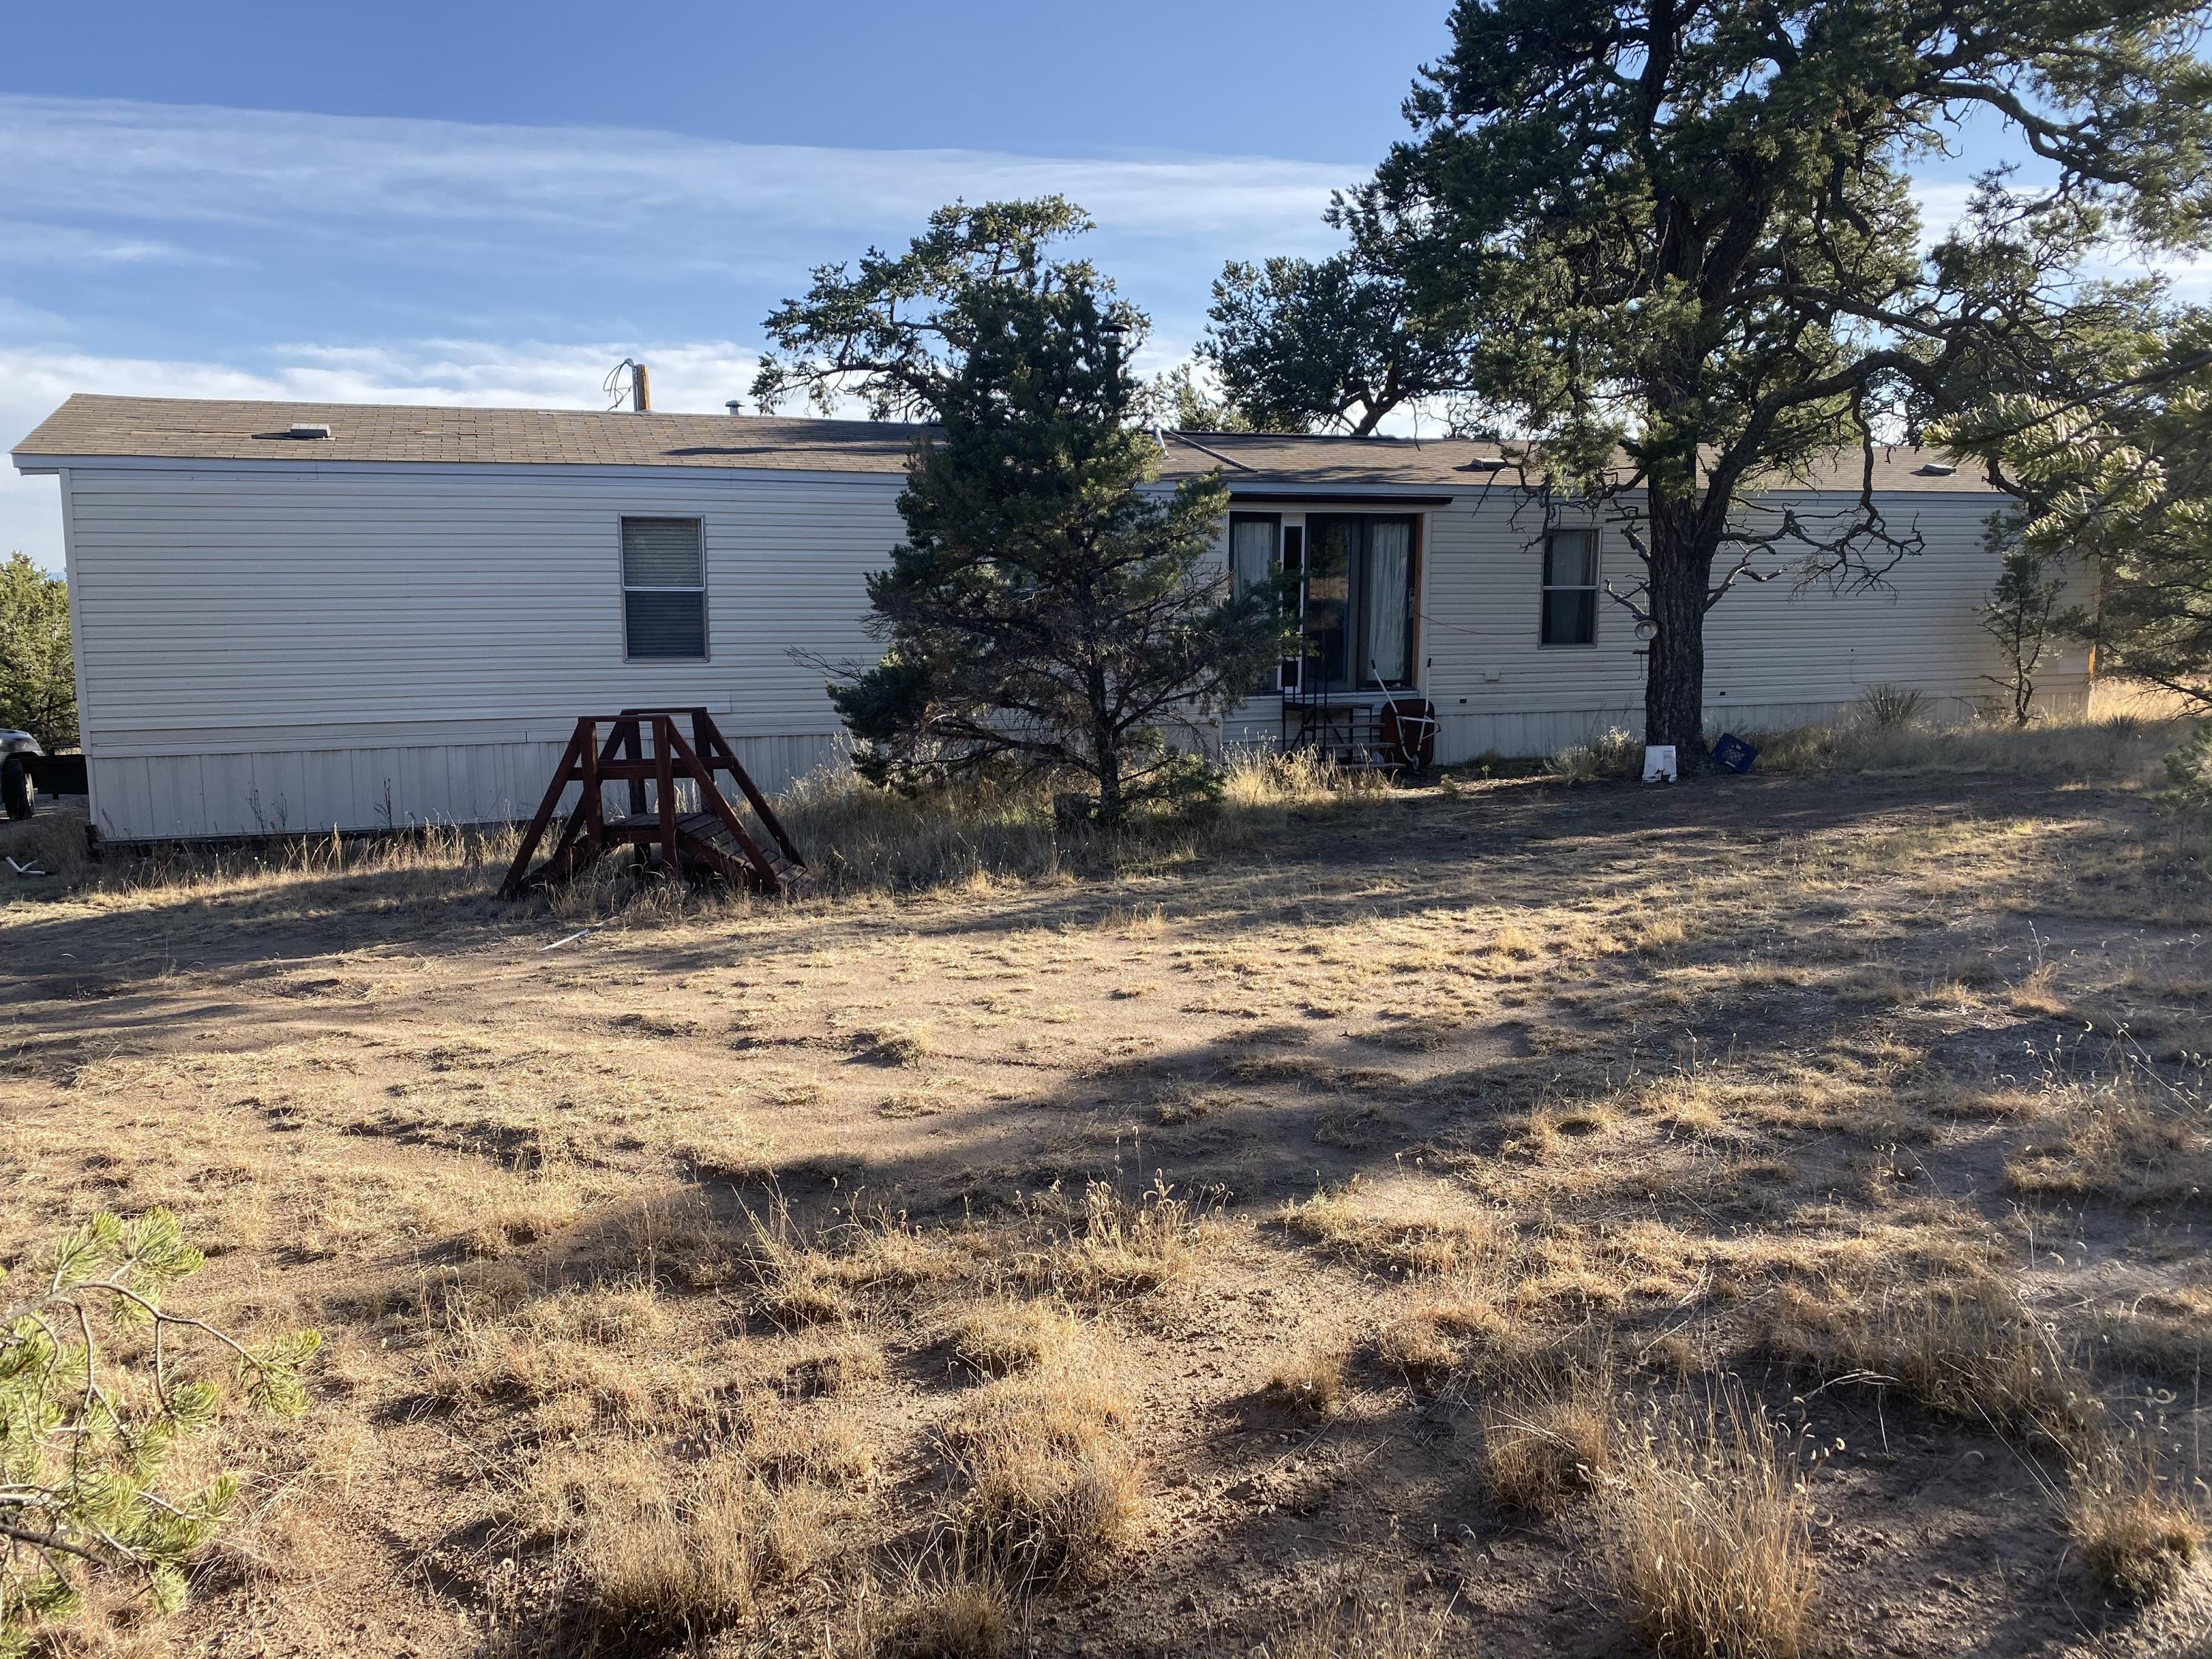 60 PINON Drive, Datil, NM 87821 - Datil, NM real estate listing